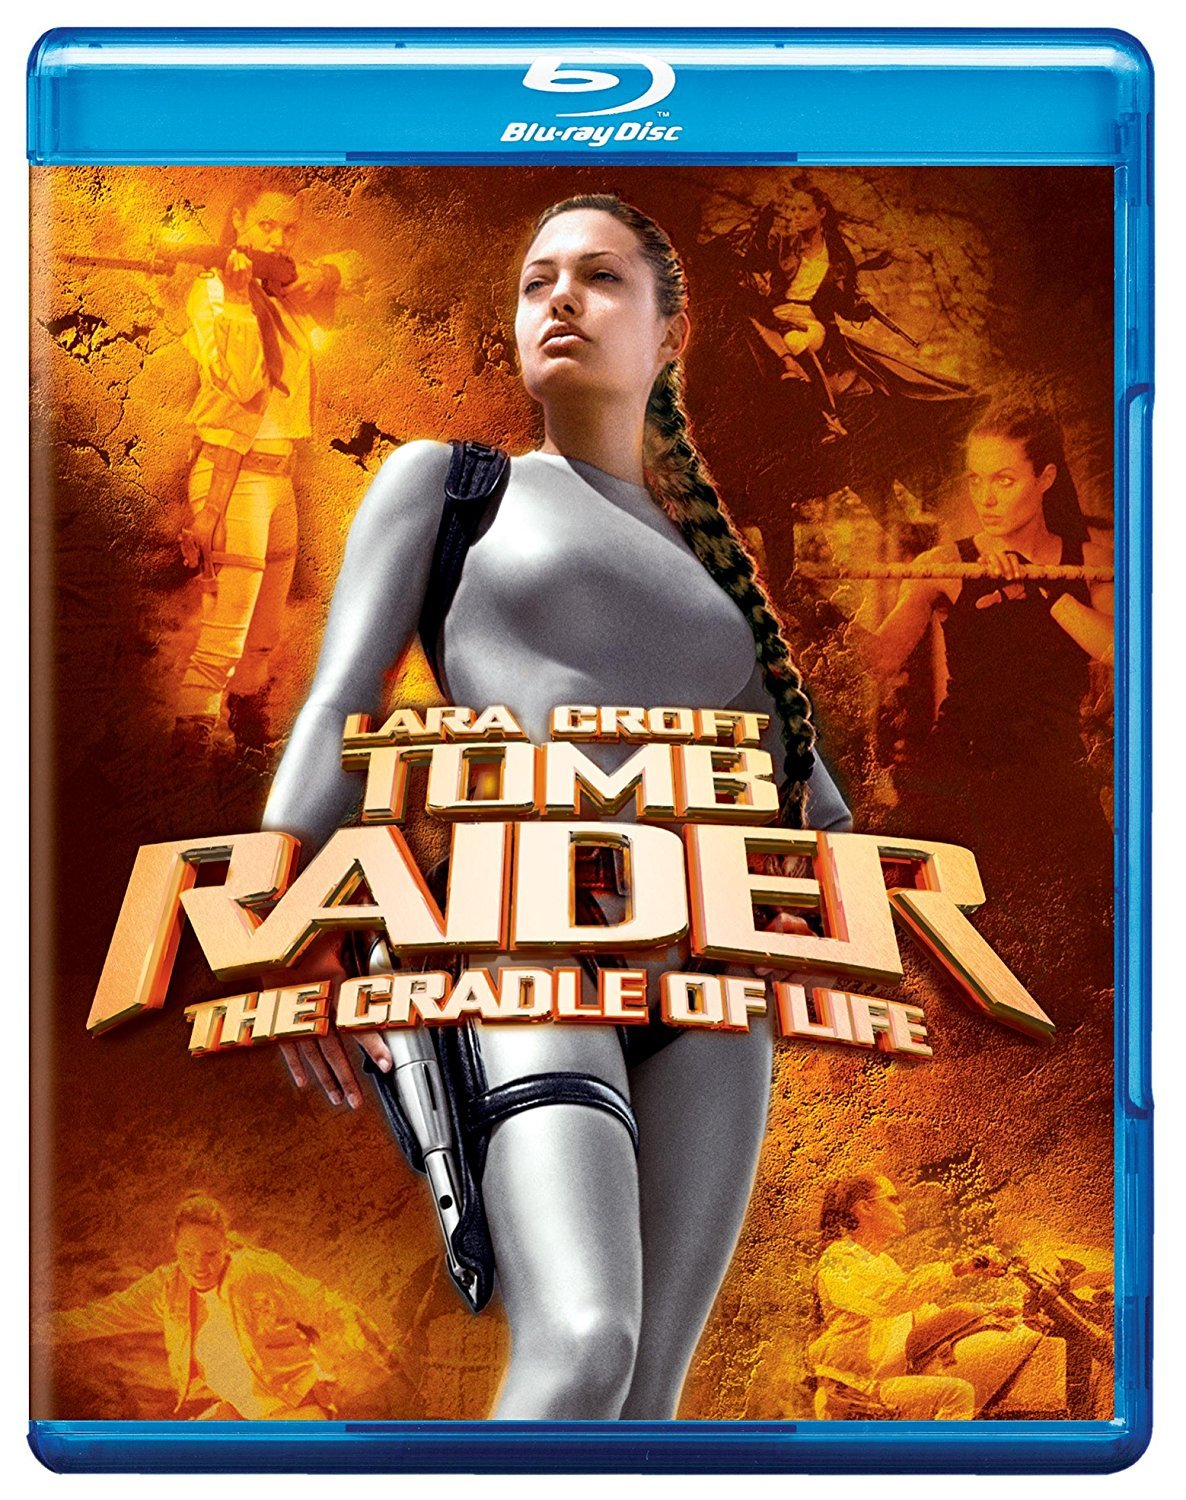 Download Tomb Raider The Cradle Of Life 2003 Bluray 1080p